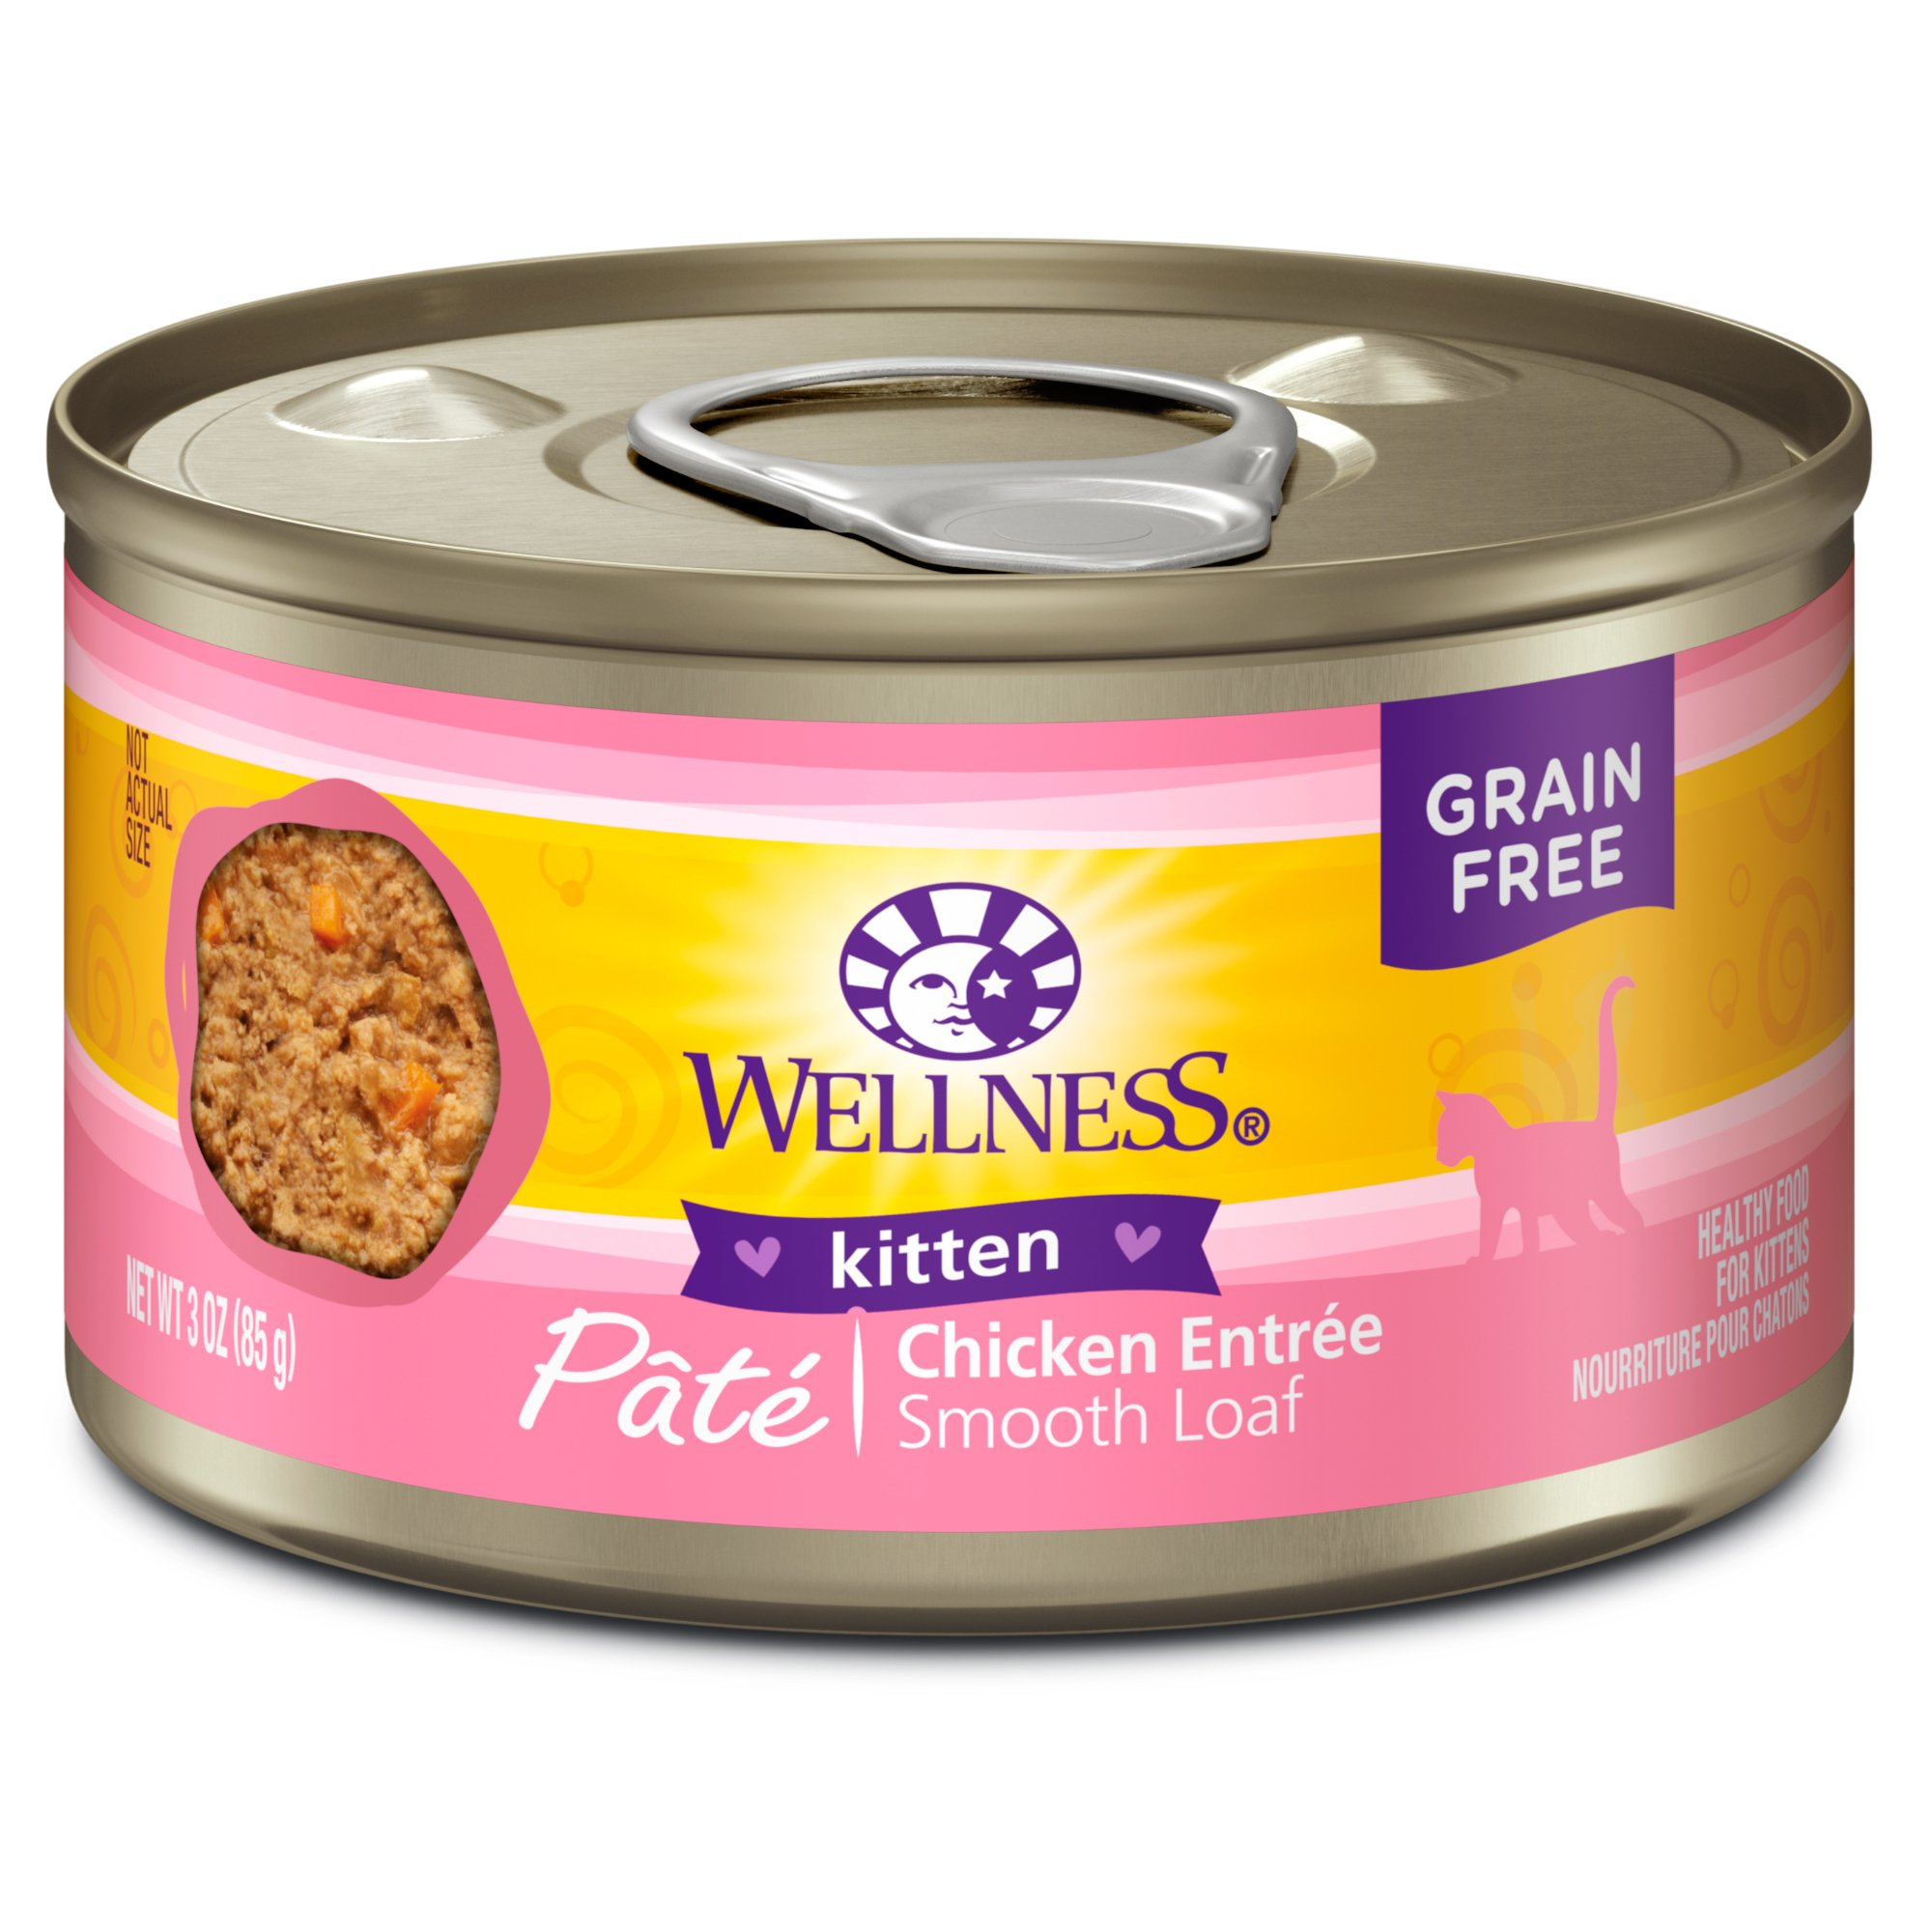 Wellness Cat Food Canned Amazon